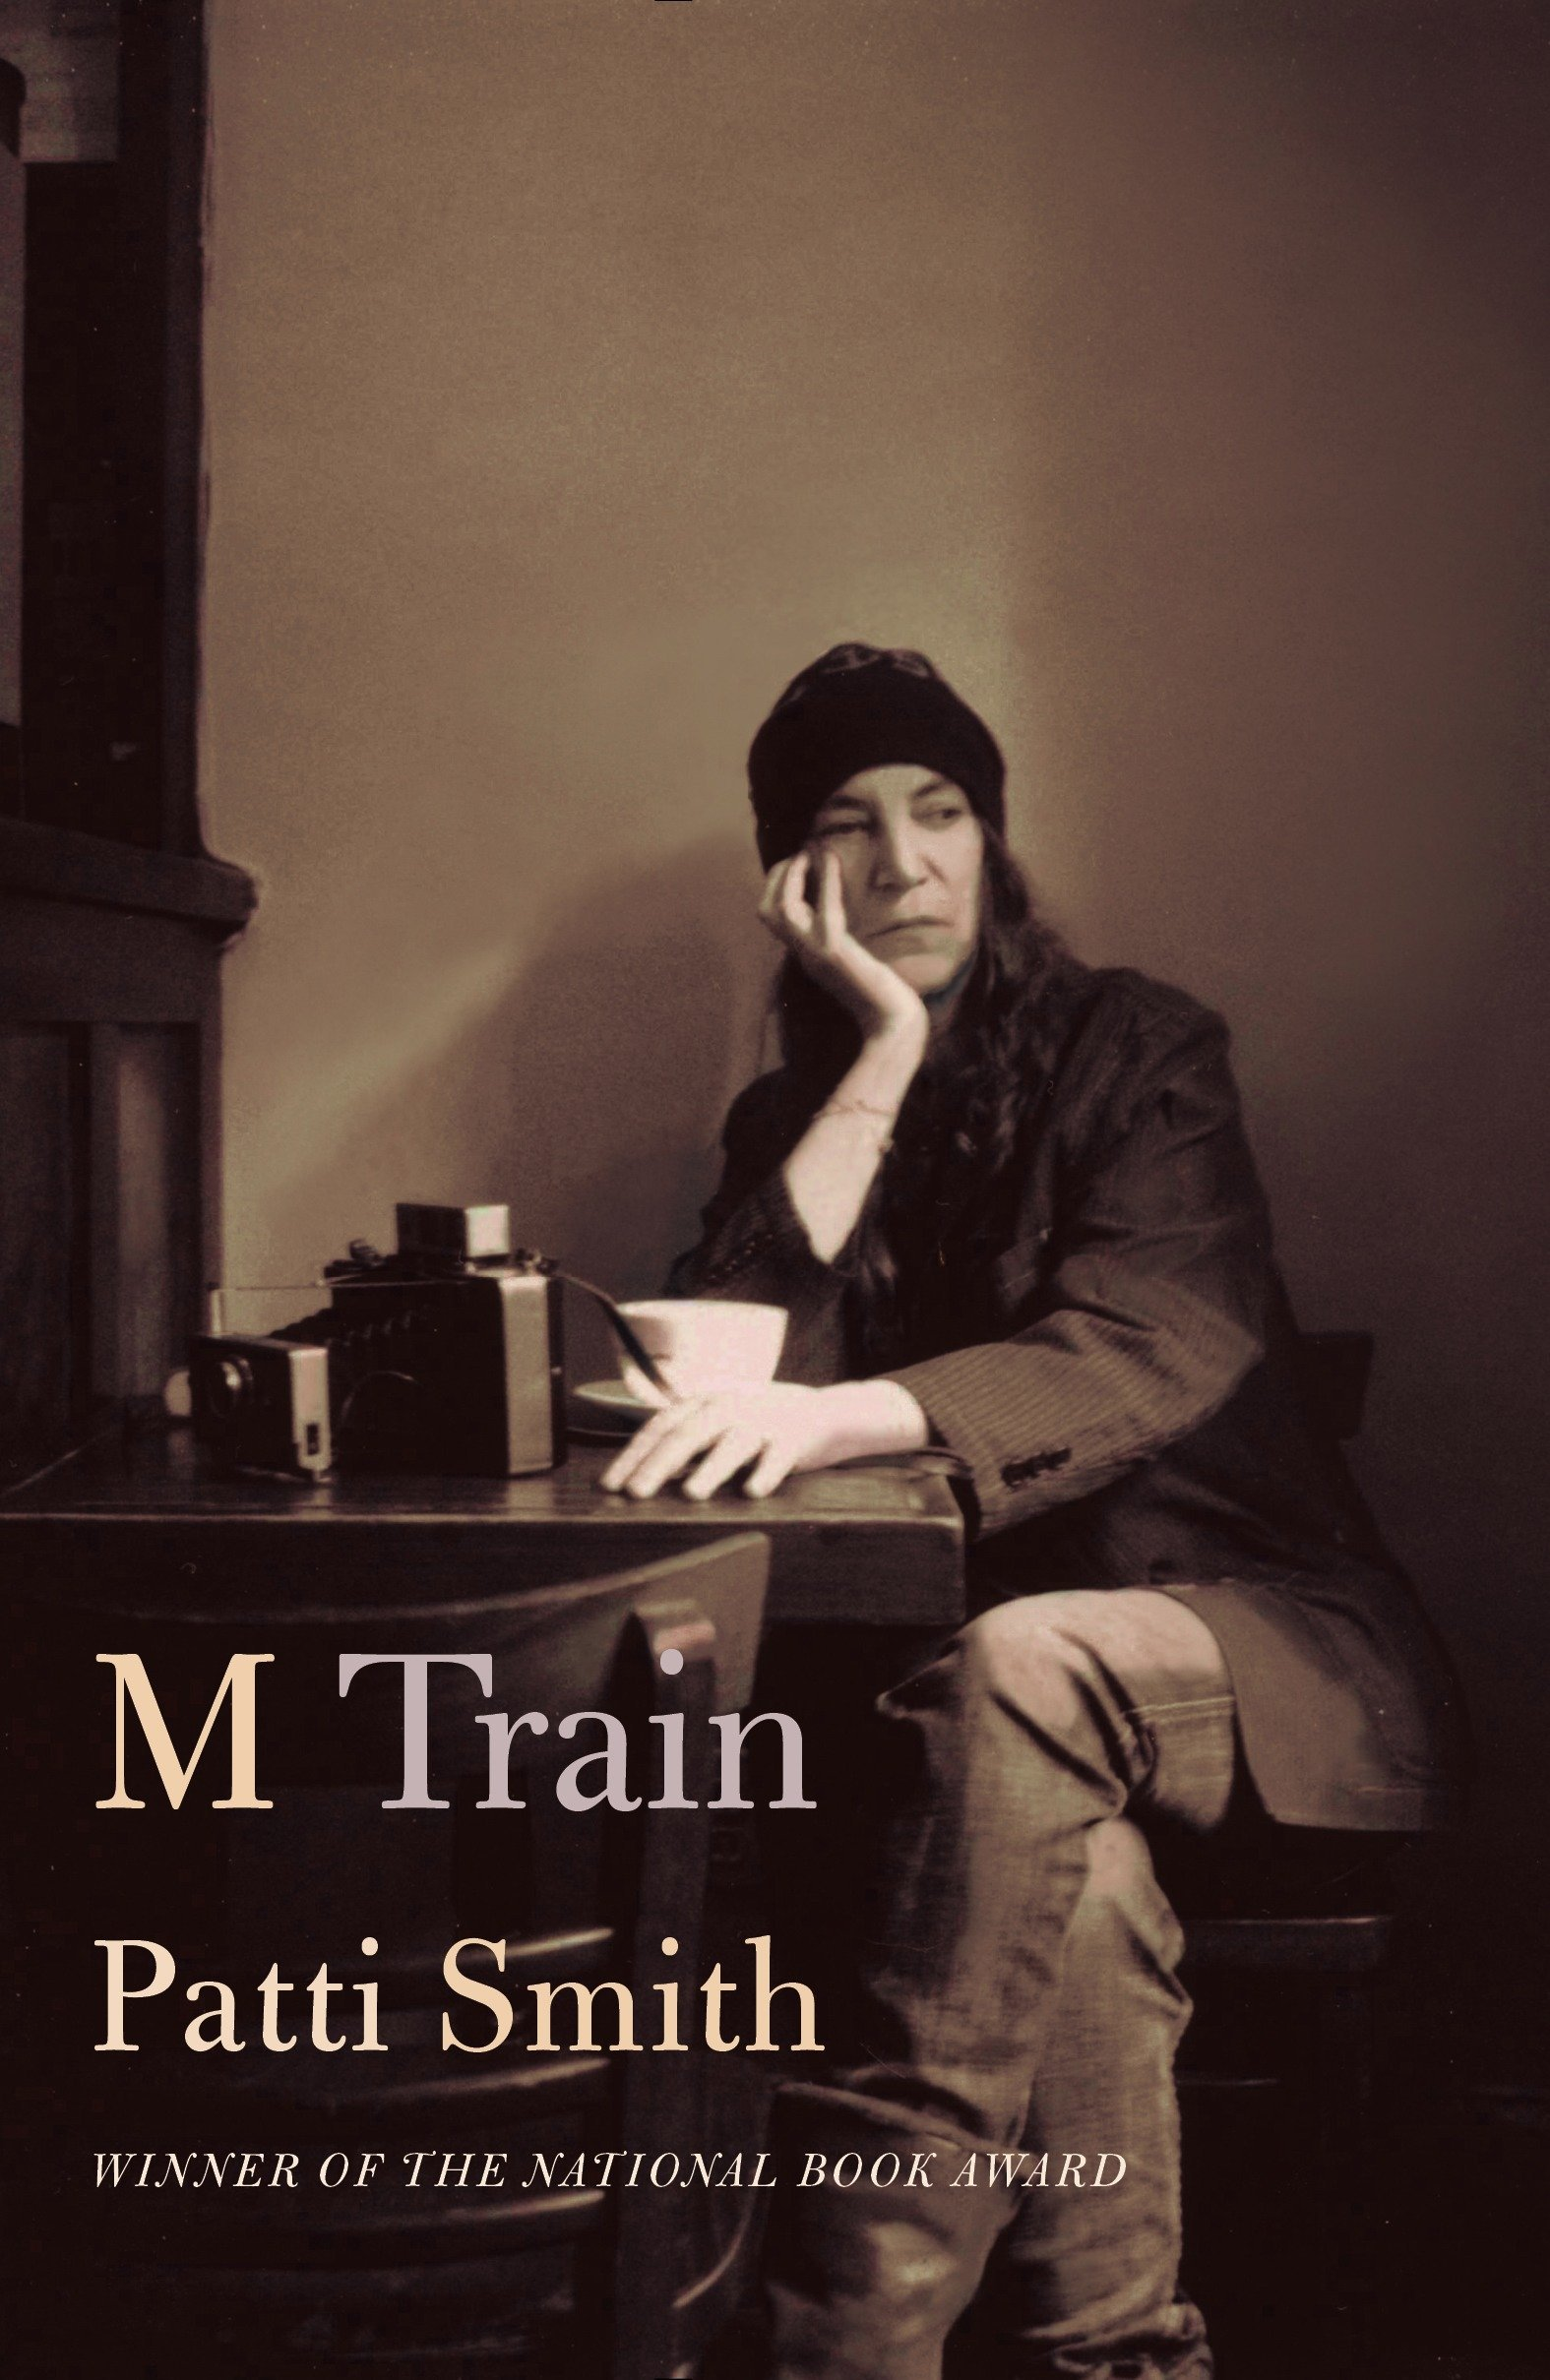 A book by Patti Smith, M Train